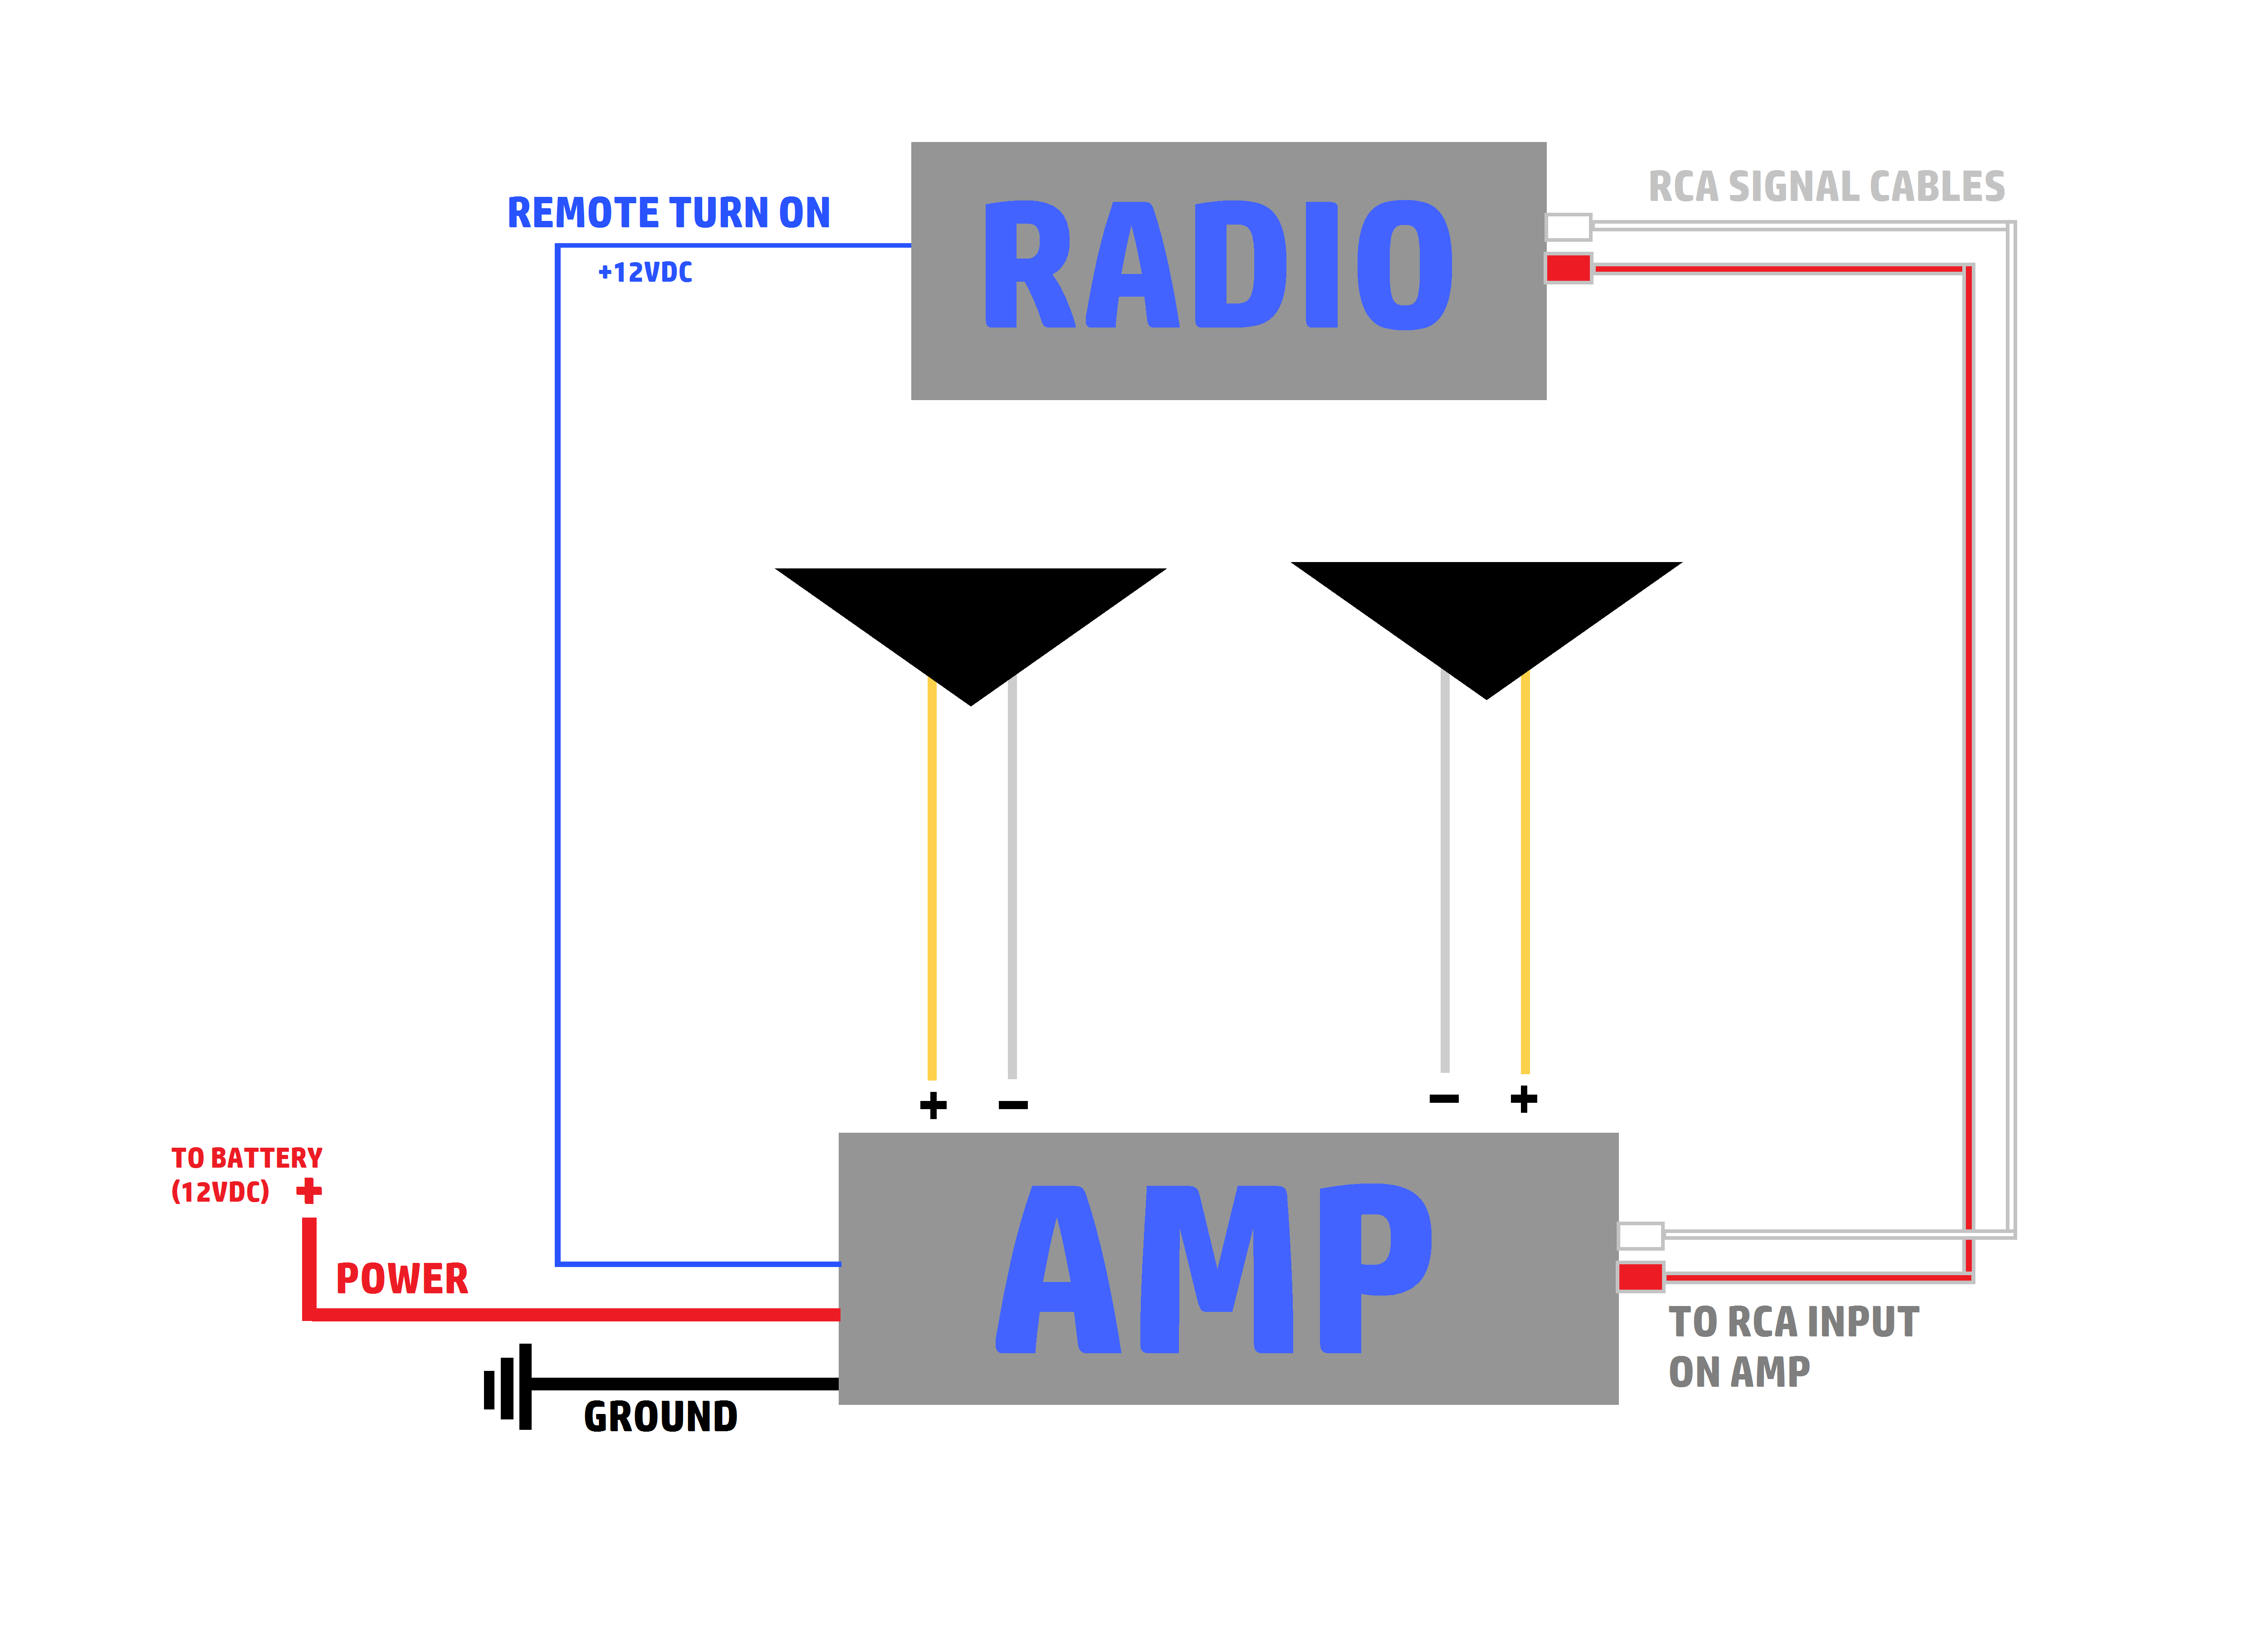 how to install an amp wiring diagram car audio advice amp wiring diagram power wire this will be one of the biggest wires in the kit there will big a long one and a short one the long one is the power wire